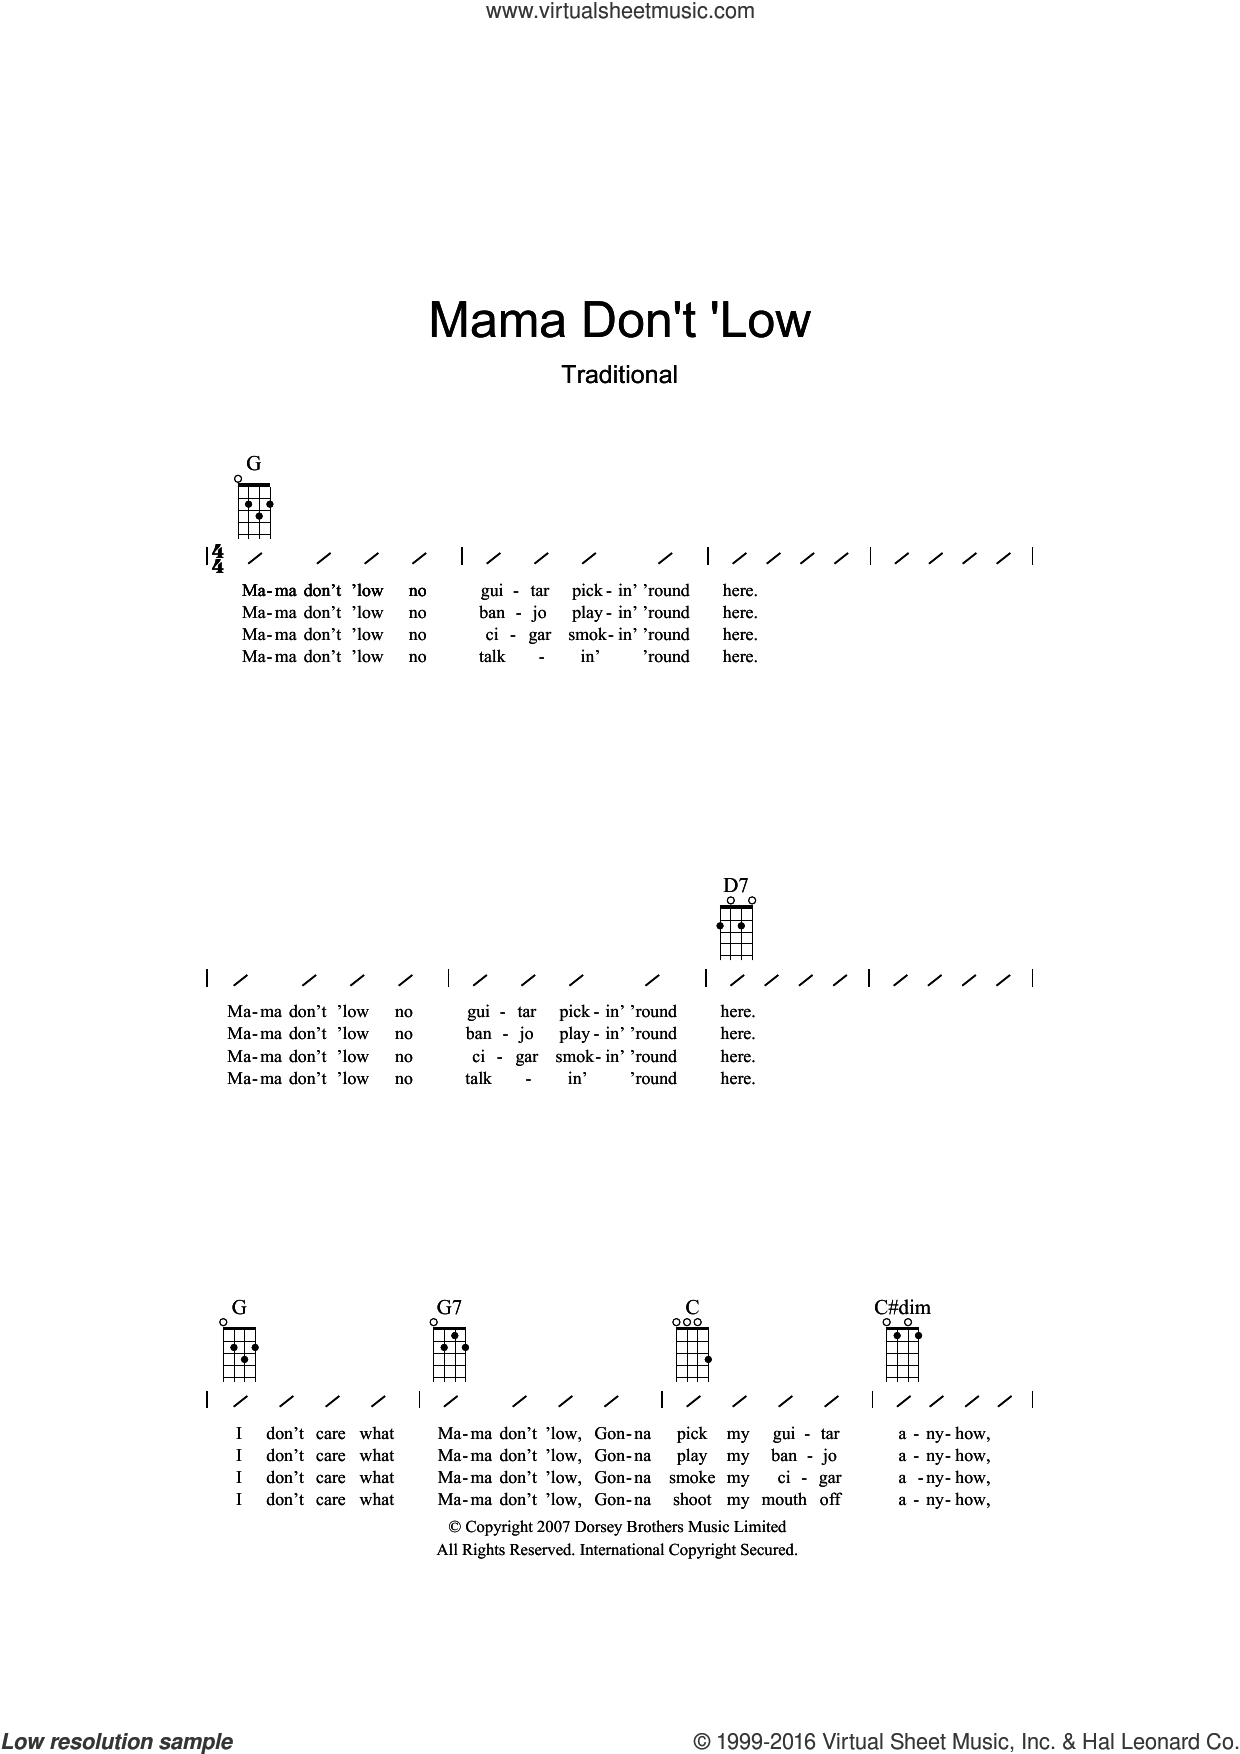 Mama Don't 'low sheet music for ukulele (chords), intermediate skill level